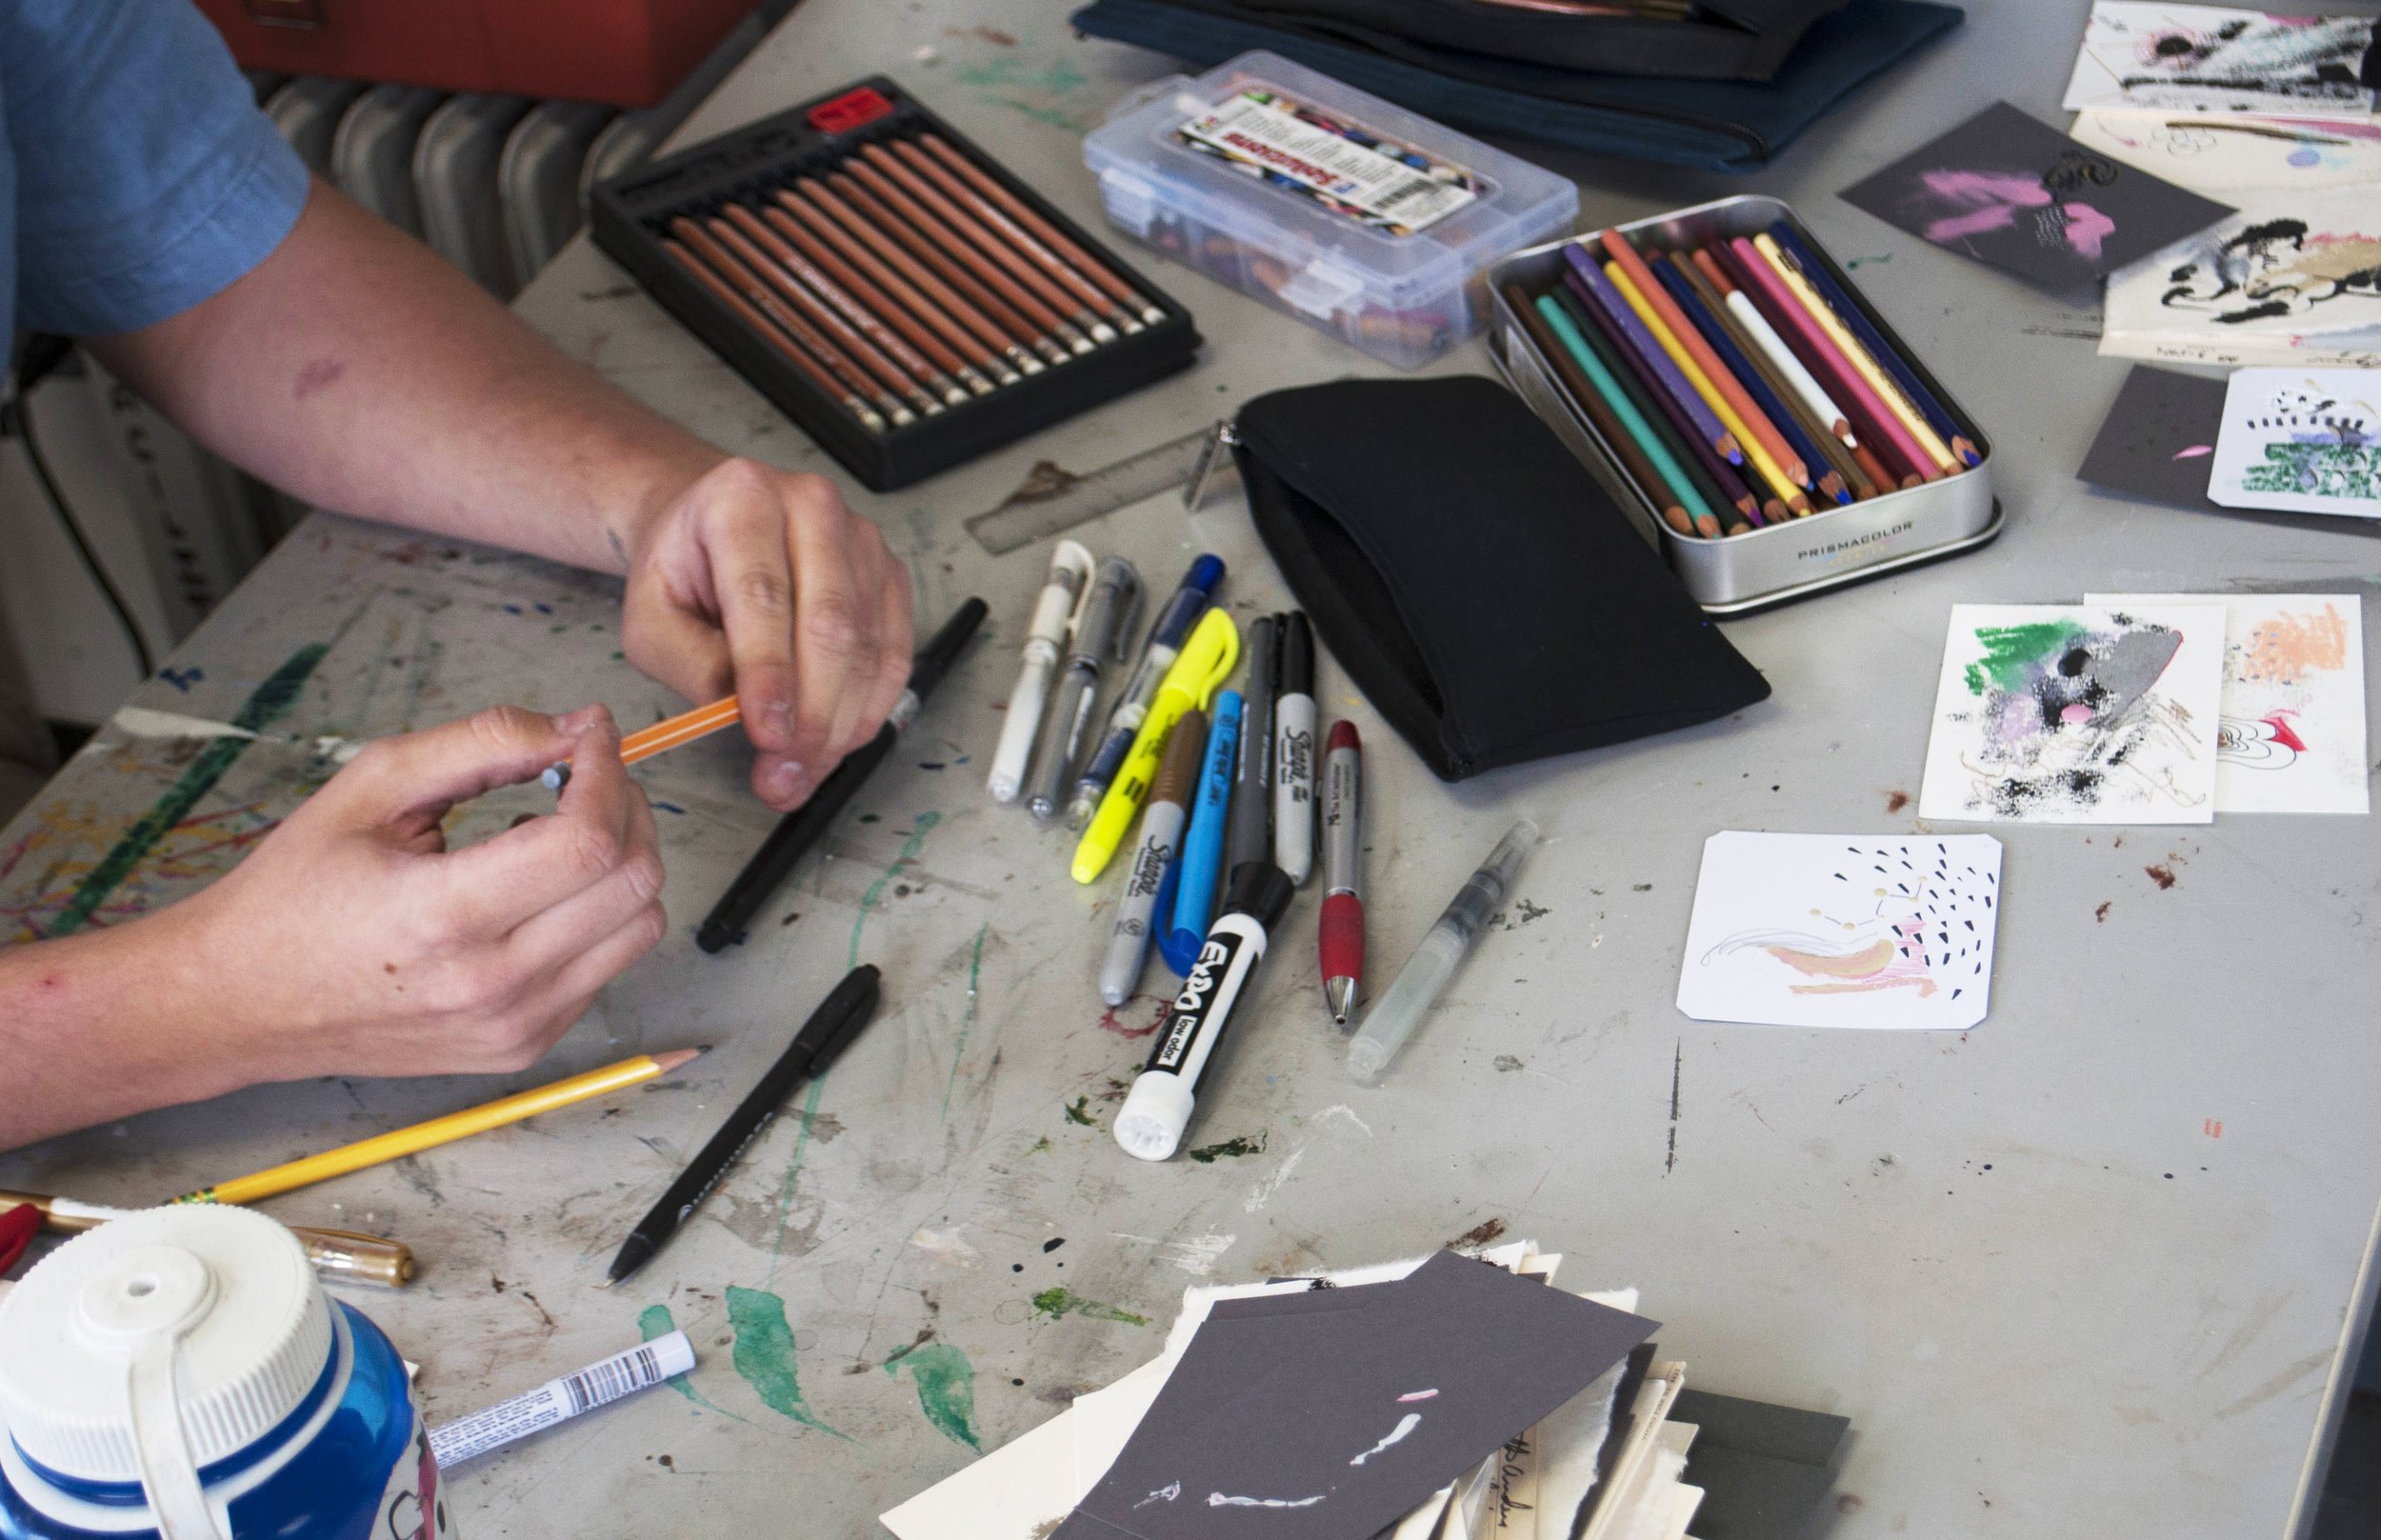 'I'm rejecting the idea that different aspects of my work need to 'fit together'.' - -Drew Austin